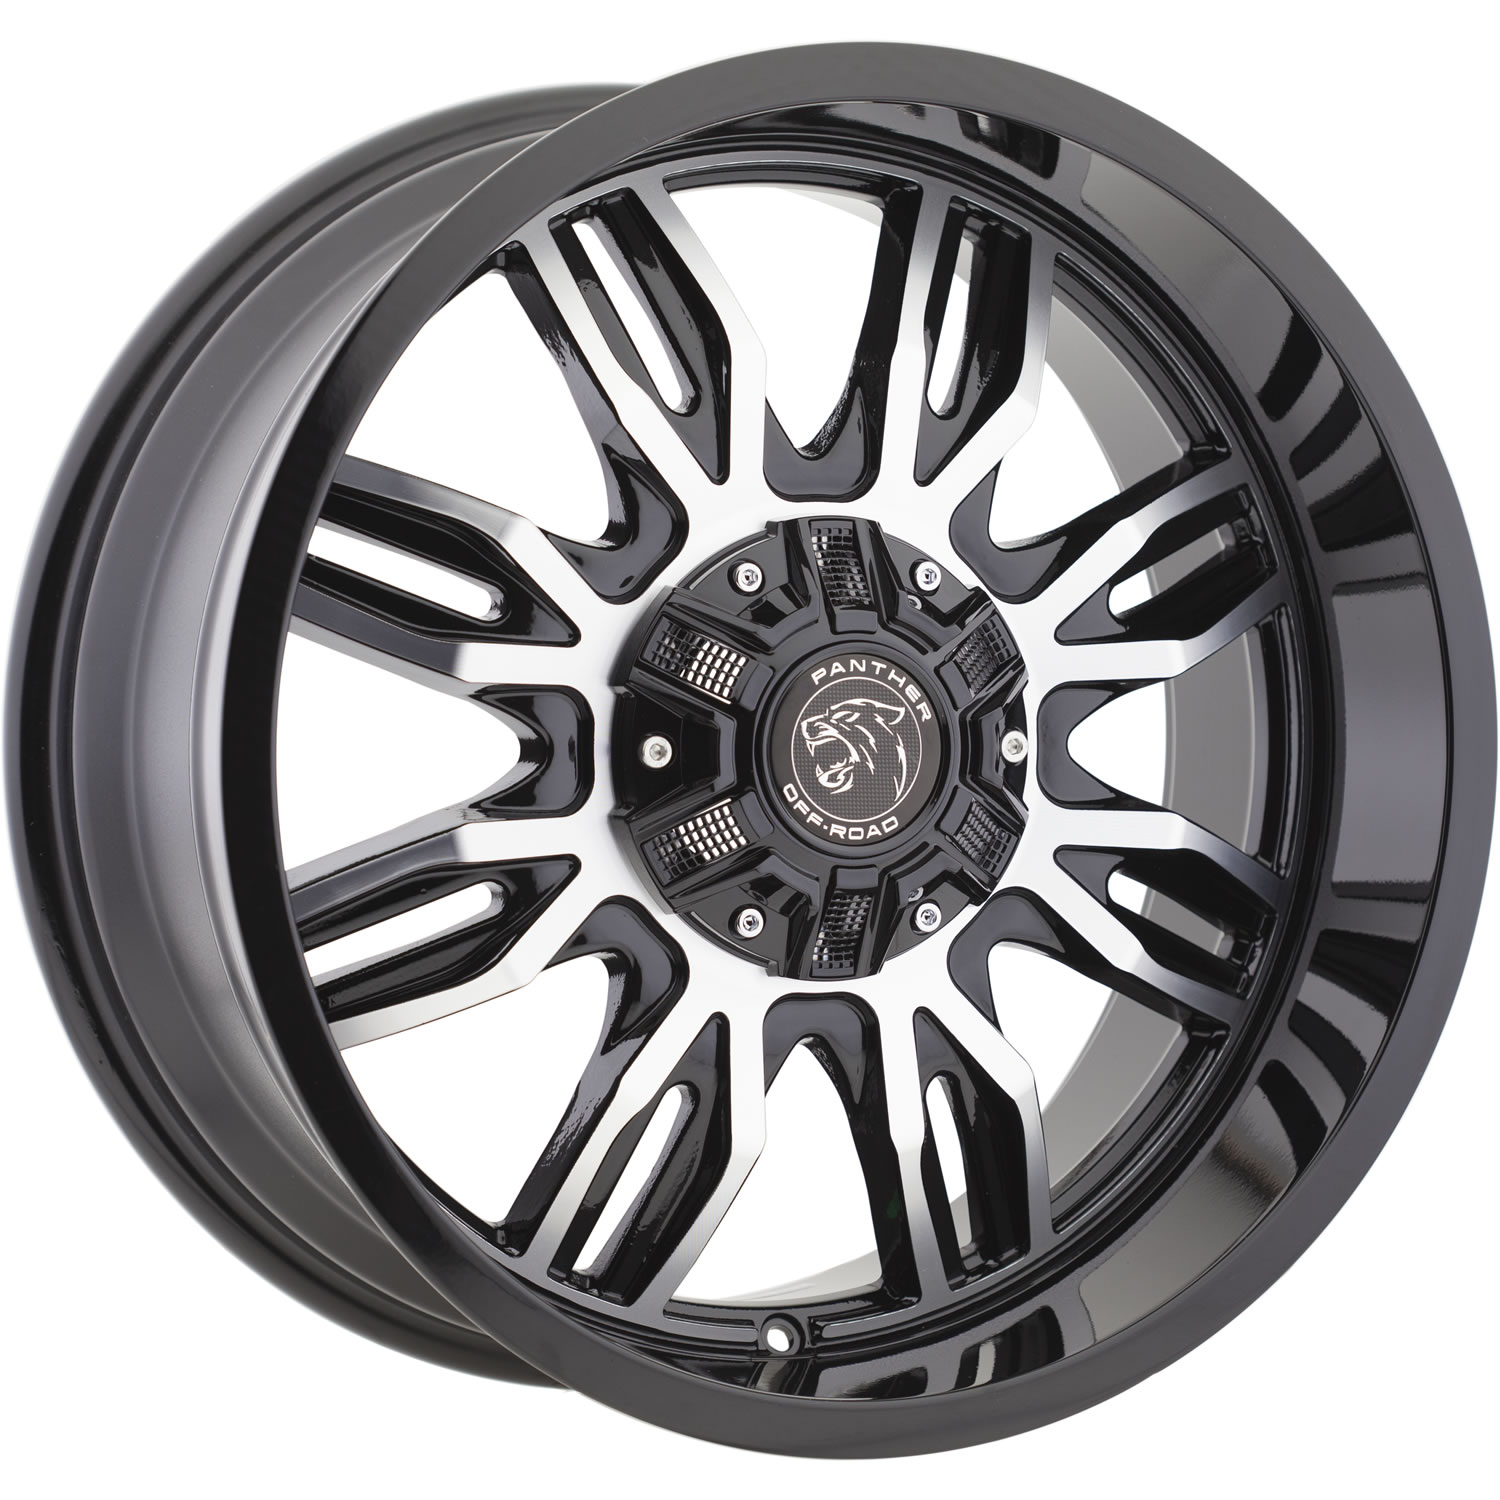 Panther Offroad 580 20x9 12 Custom Wheels